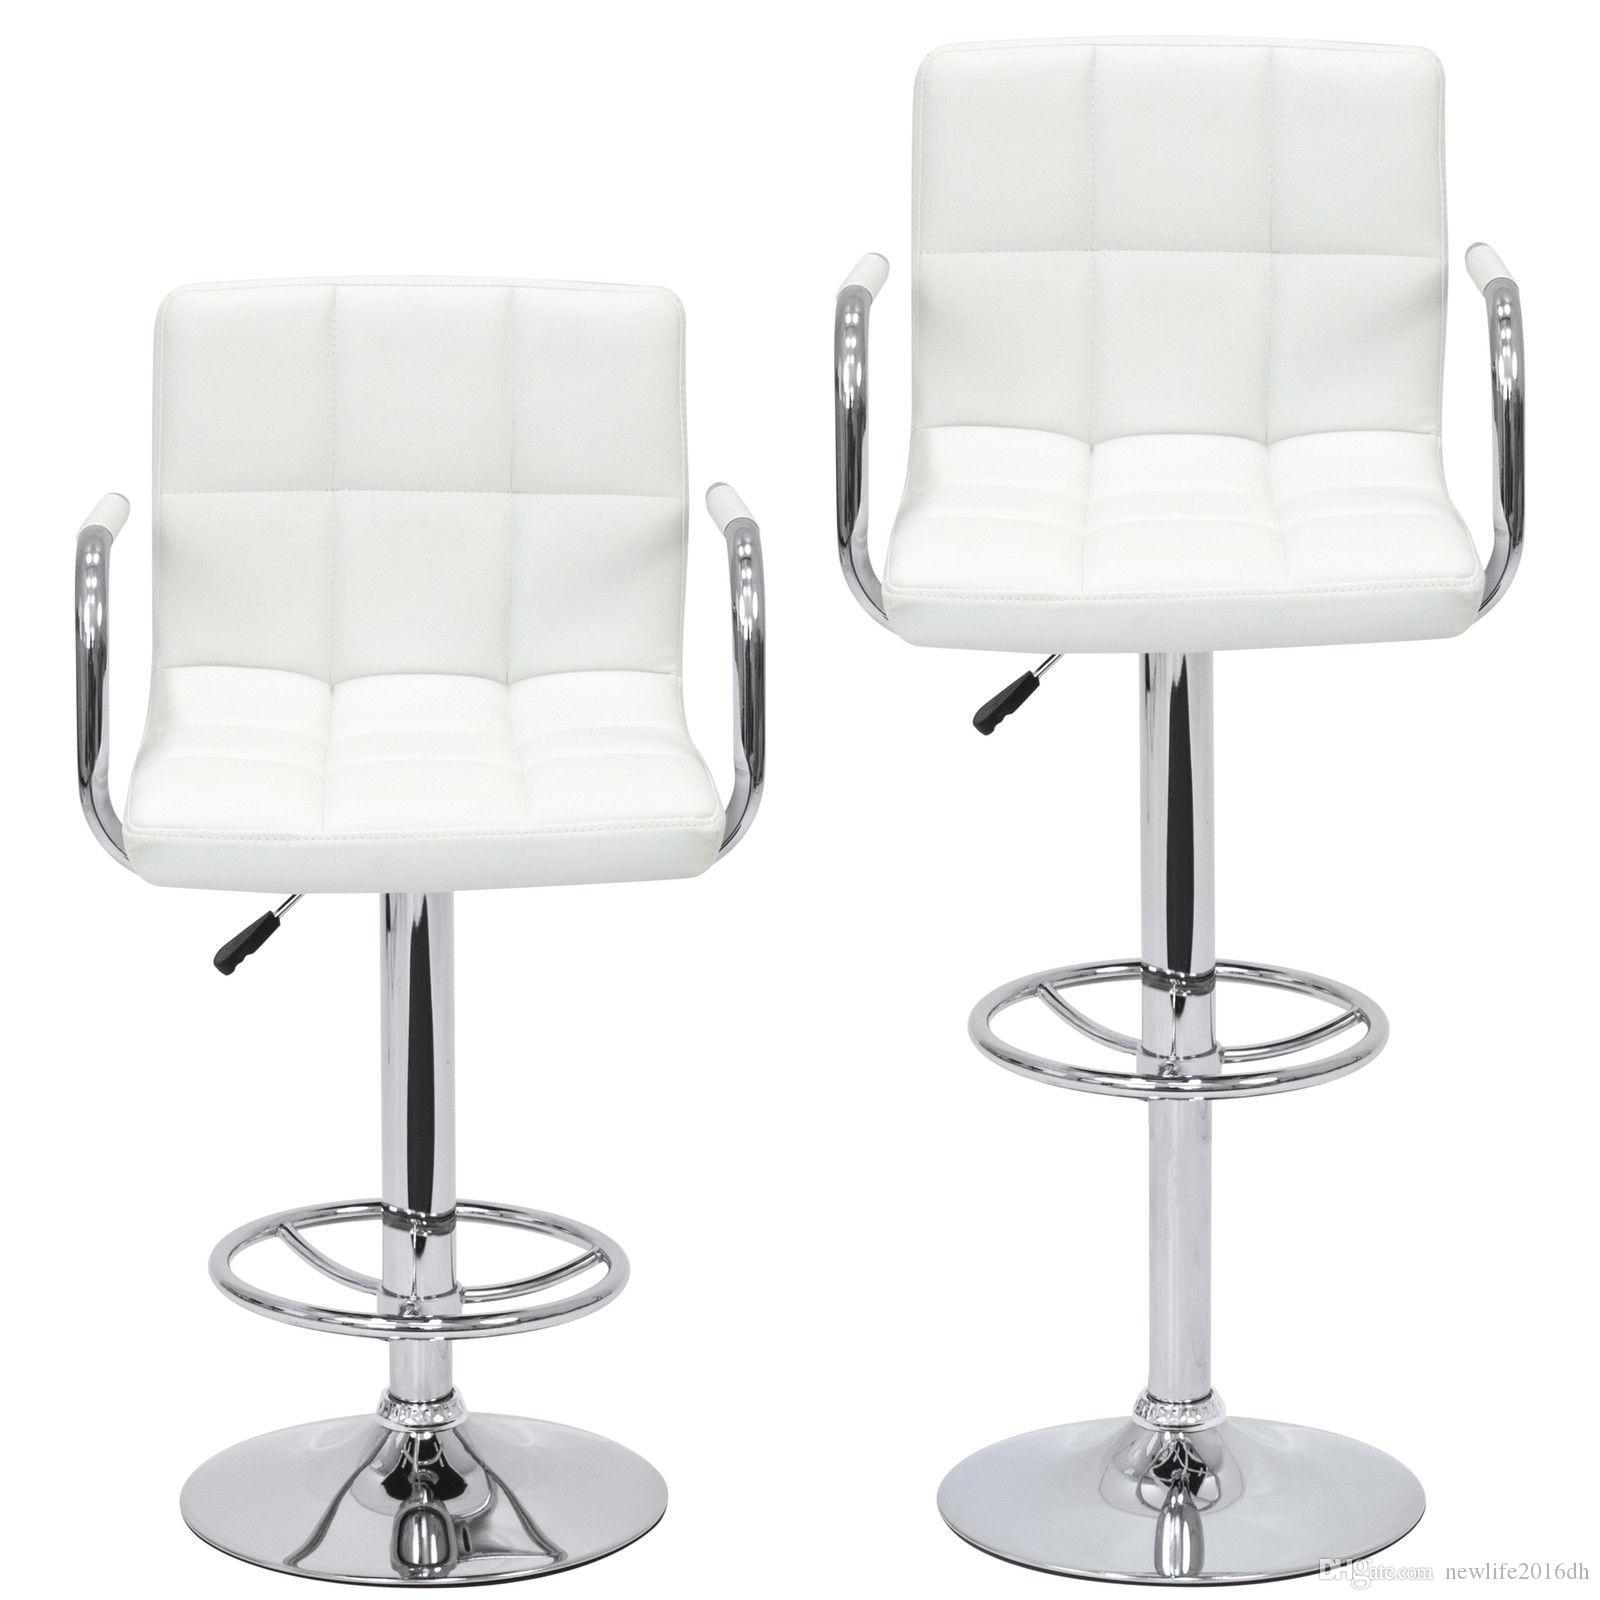 Admirable Of 2 Swivel Hydraulic Height Adjustable Leather Pub Bar Stools Chair White From Newlife2016Dh 110 56 Dhgate Com Machost Co Dining Chair Design Ideas Machostcouk